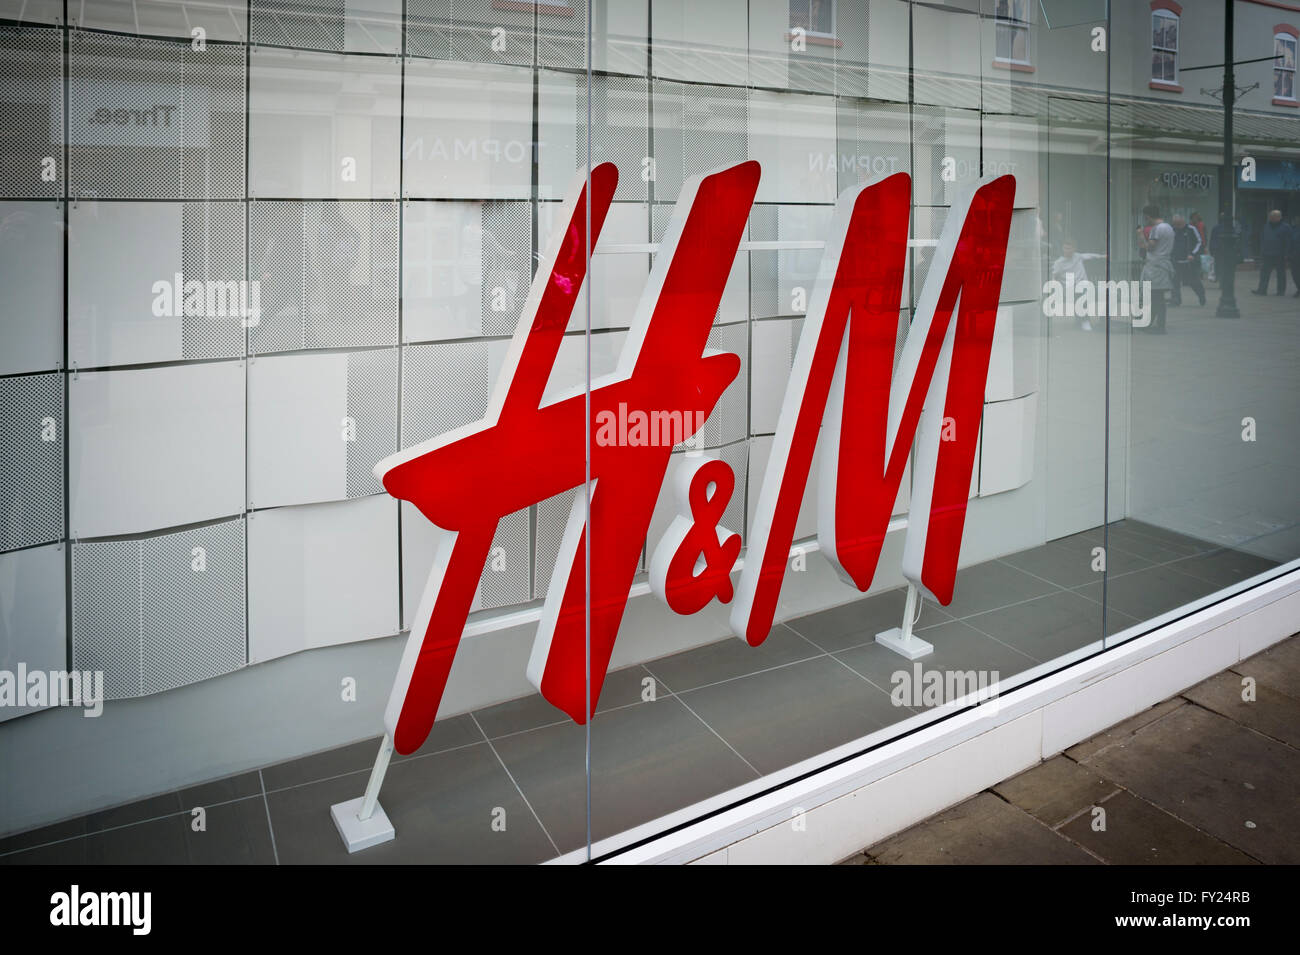 Shop window display of an H&M clothing store in the high street, Salisbury, Wiltshire. - Stock Image